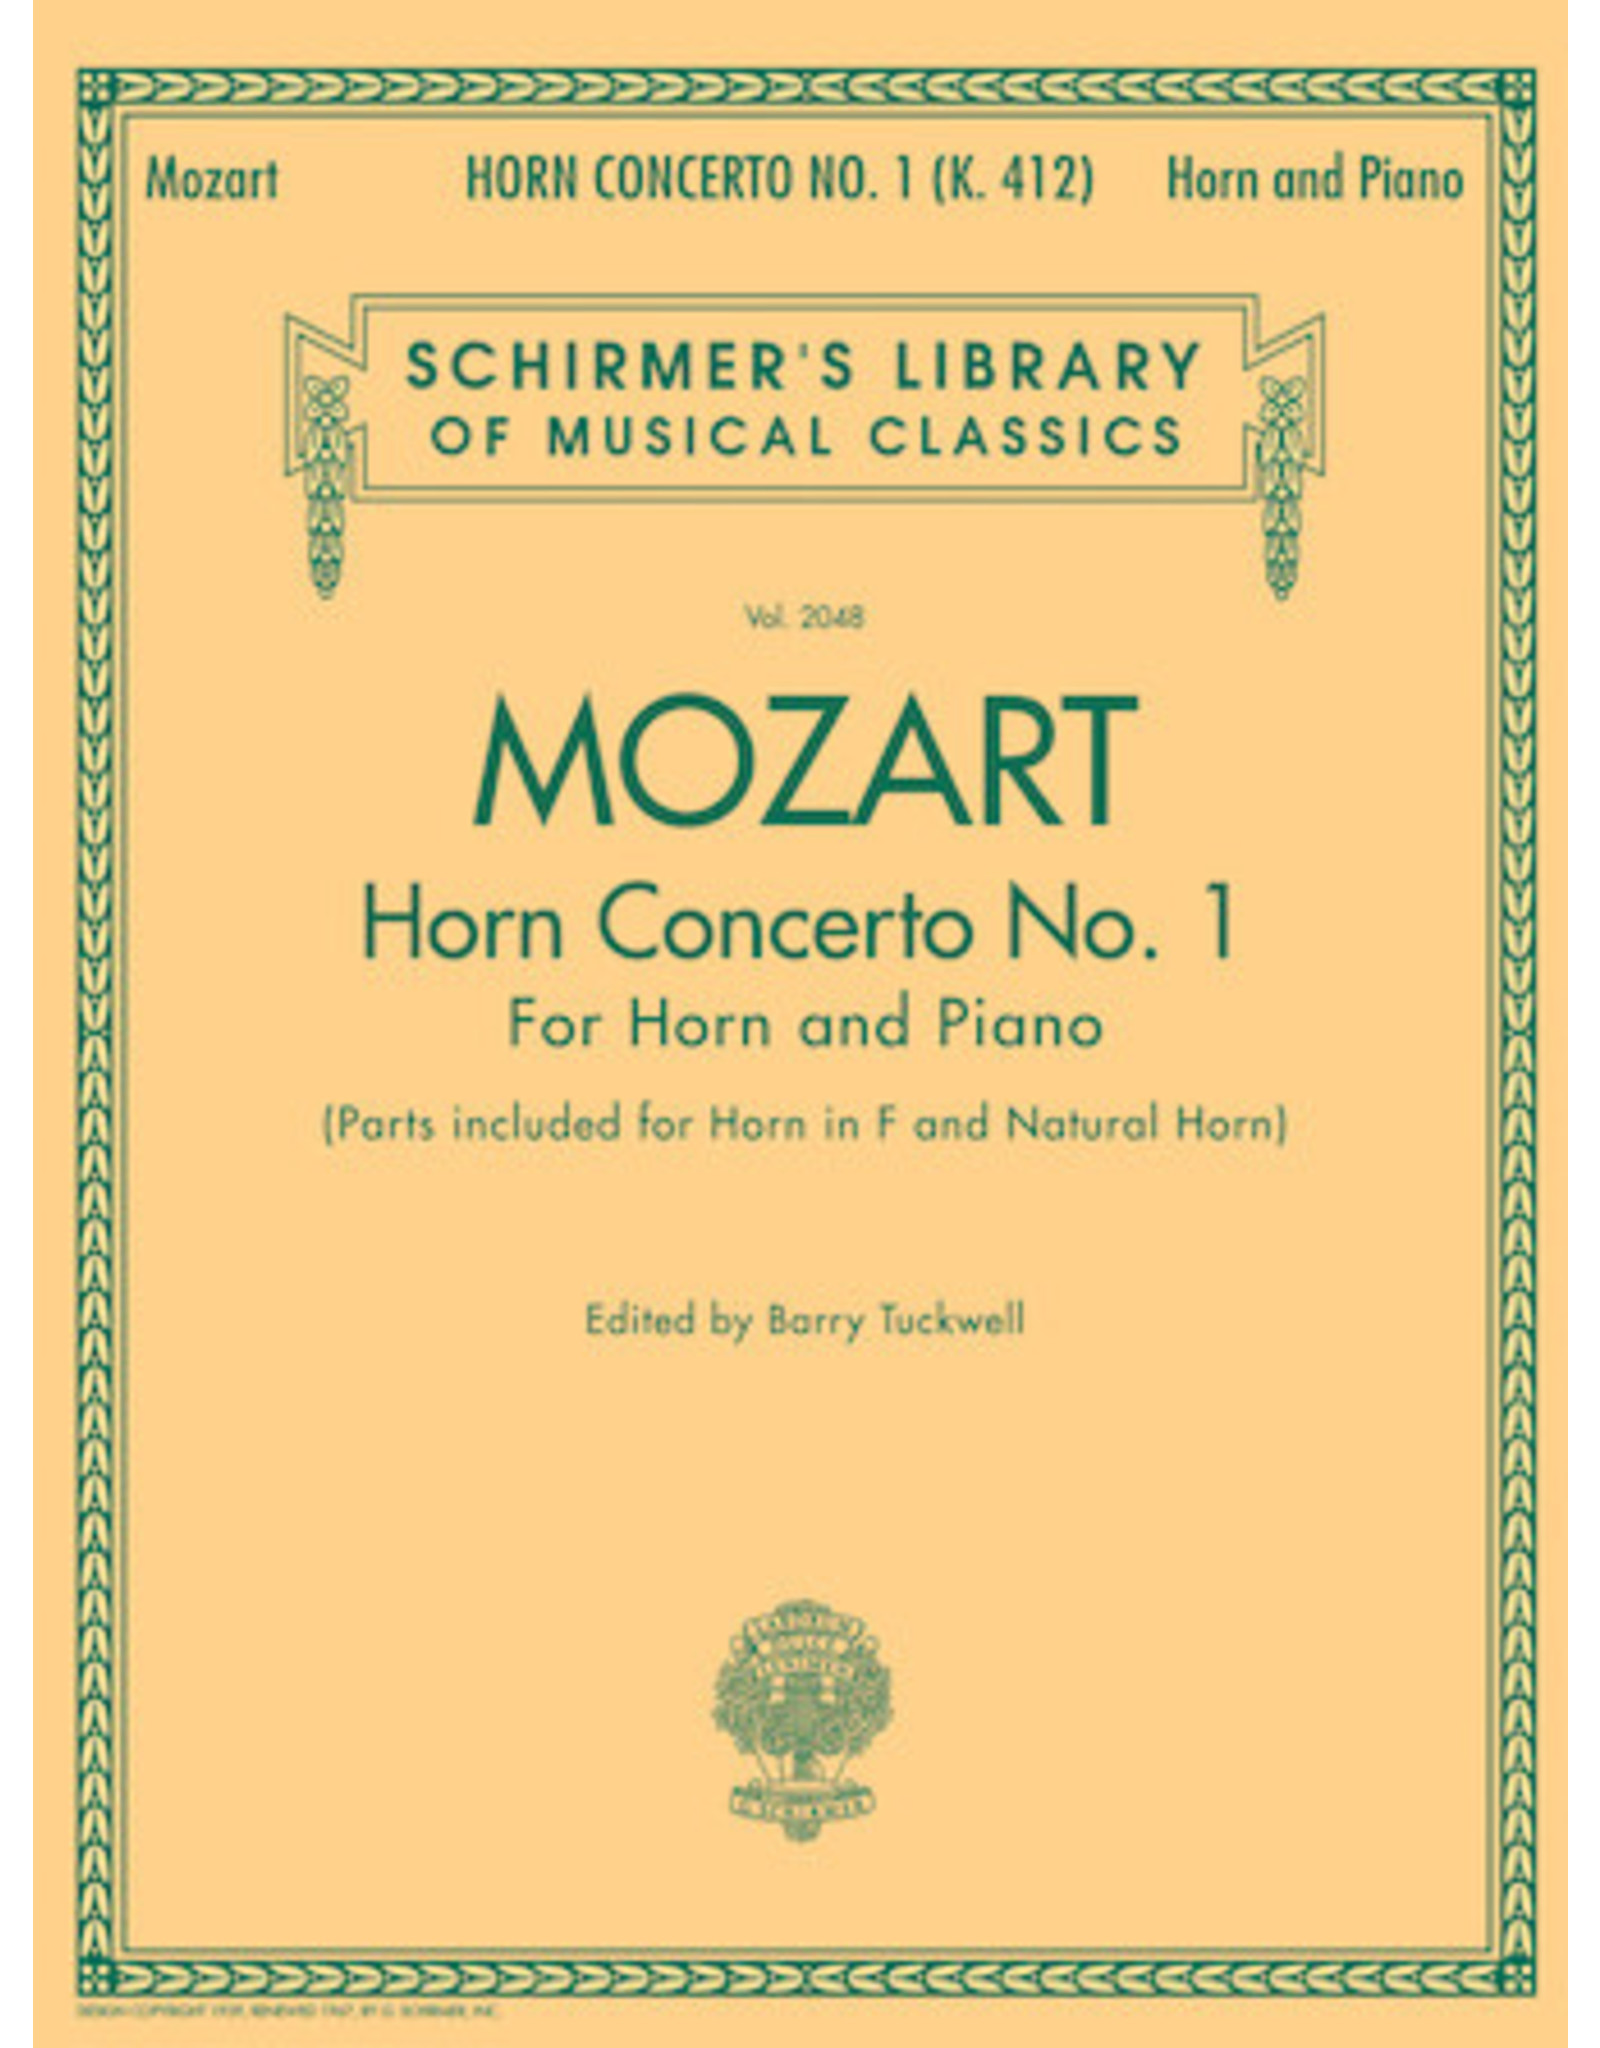 Hal Leonard Mozart - Concerto No. 1, K. 412 for Horn in F and Piano Reduction